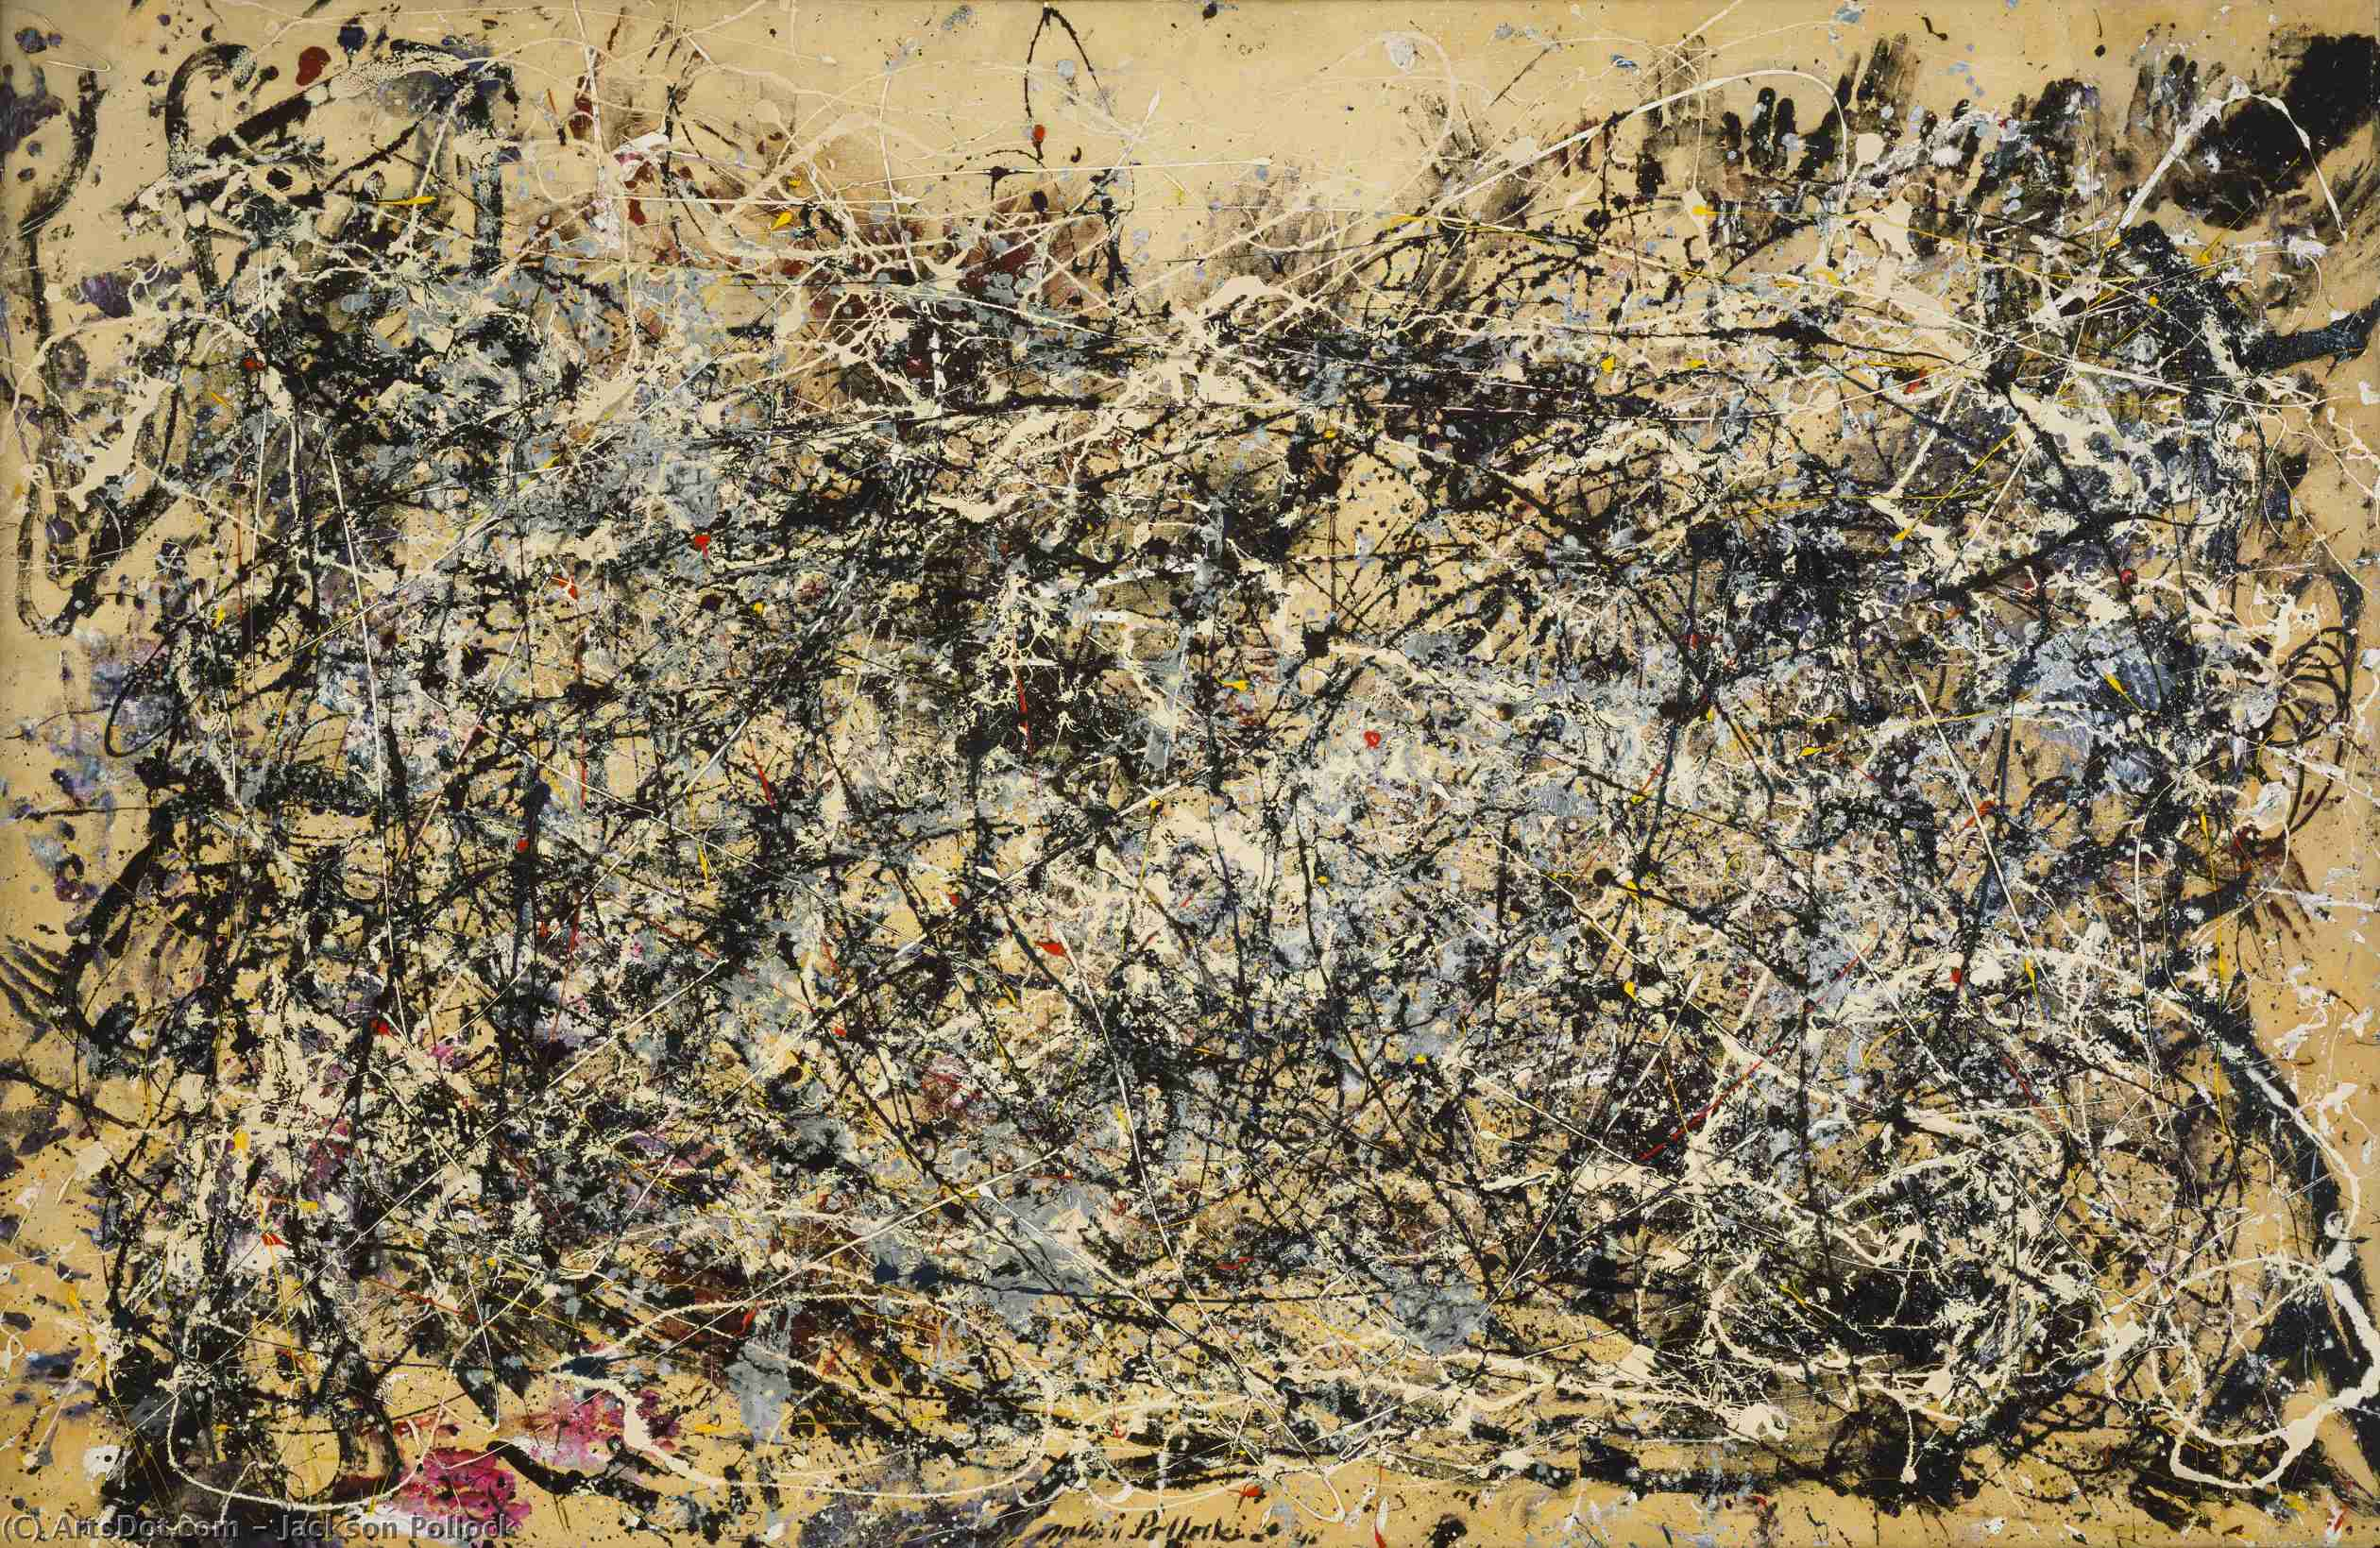 Wikioo.org - The Encyclopedia of Fine Arts - Painting, Artwork by Jackson Pollock - Number 1, 1949